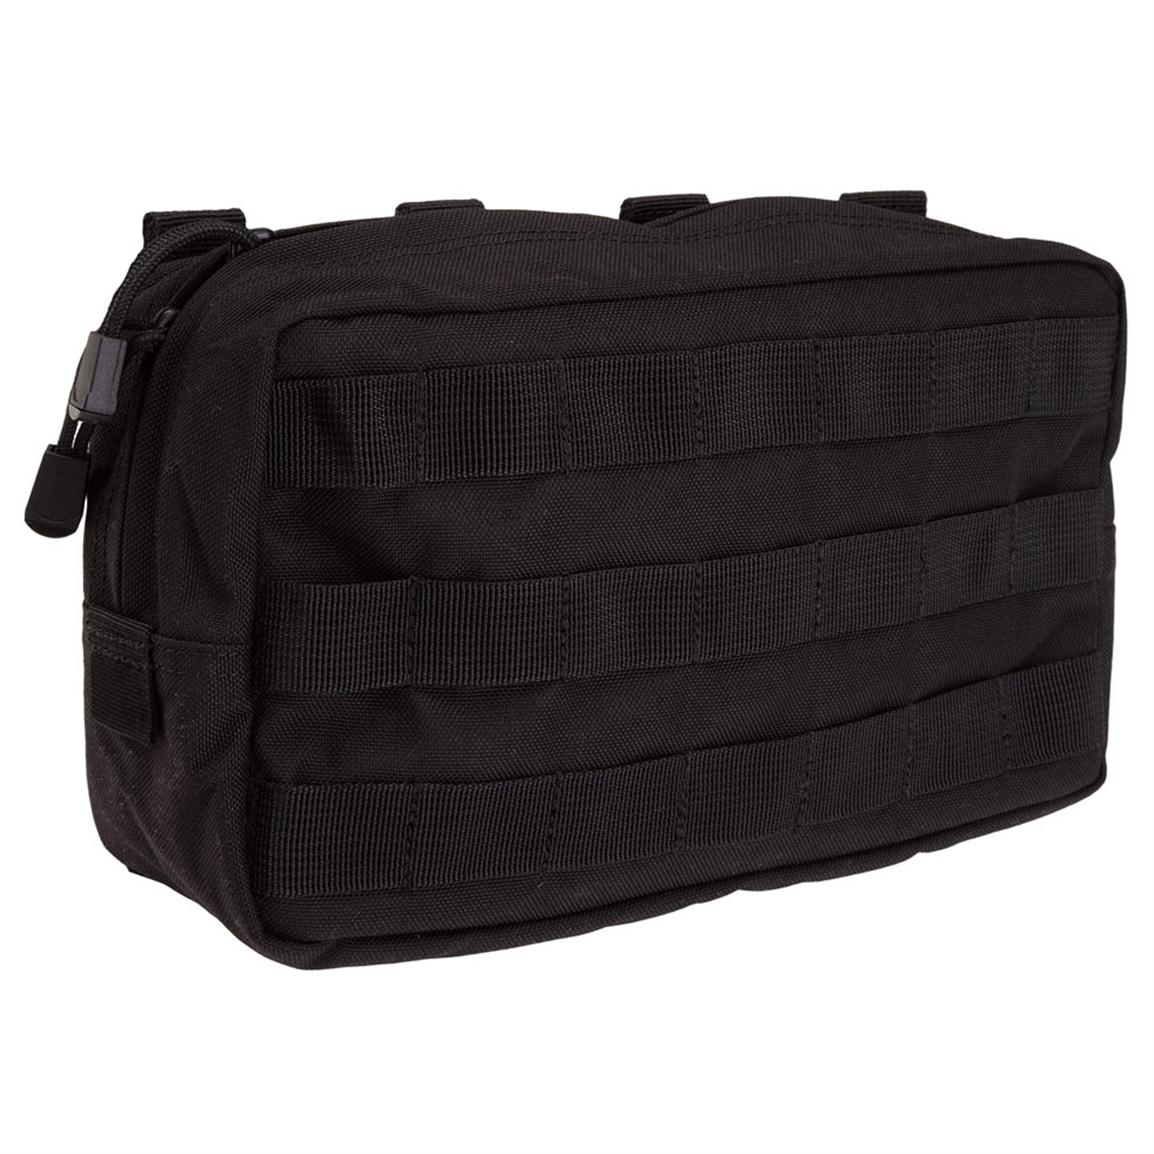 5.11 Tactical® 10.6 Med Pouch, Black